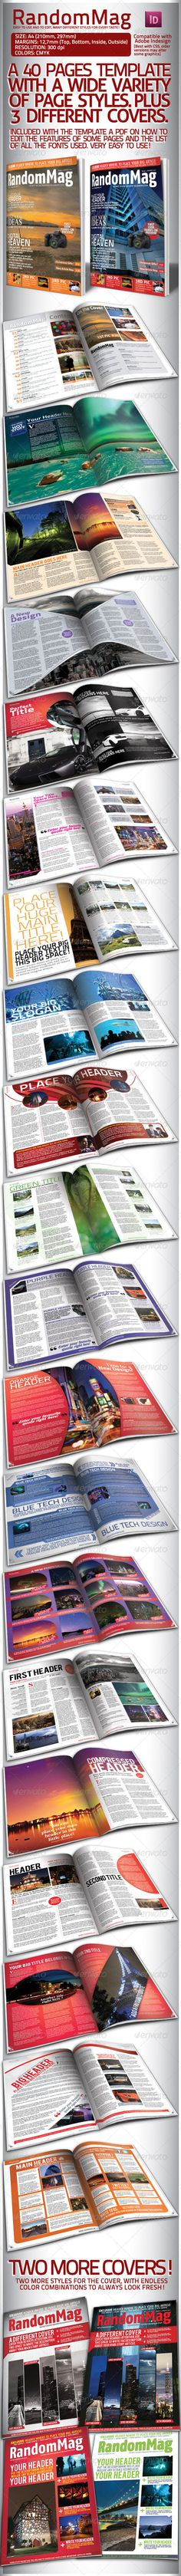 Modern Magazine 40 Pages 3 Covers by StormDesigns This is a magazine template which can be used either in print or web and the layout is good for